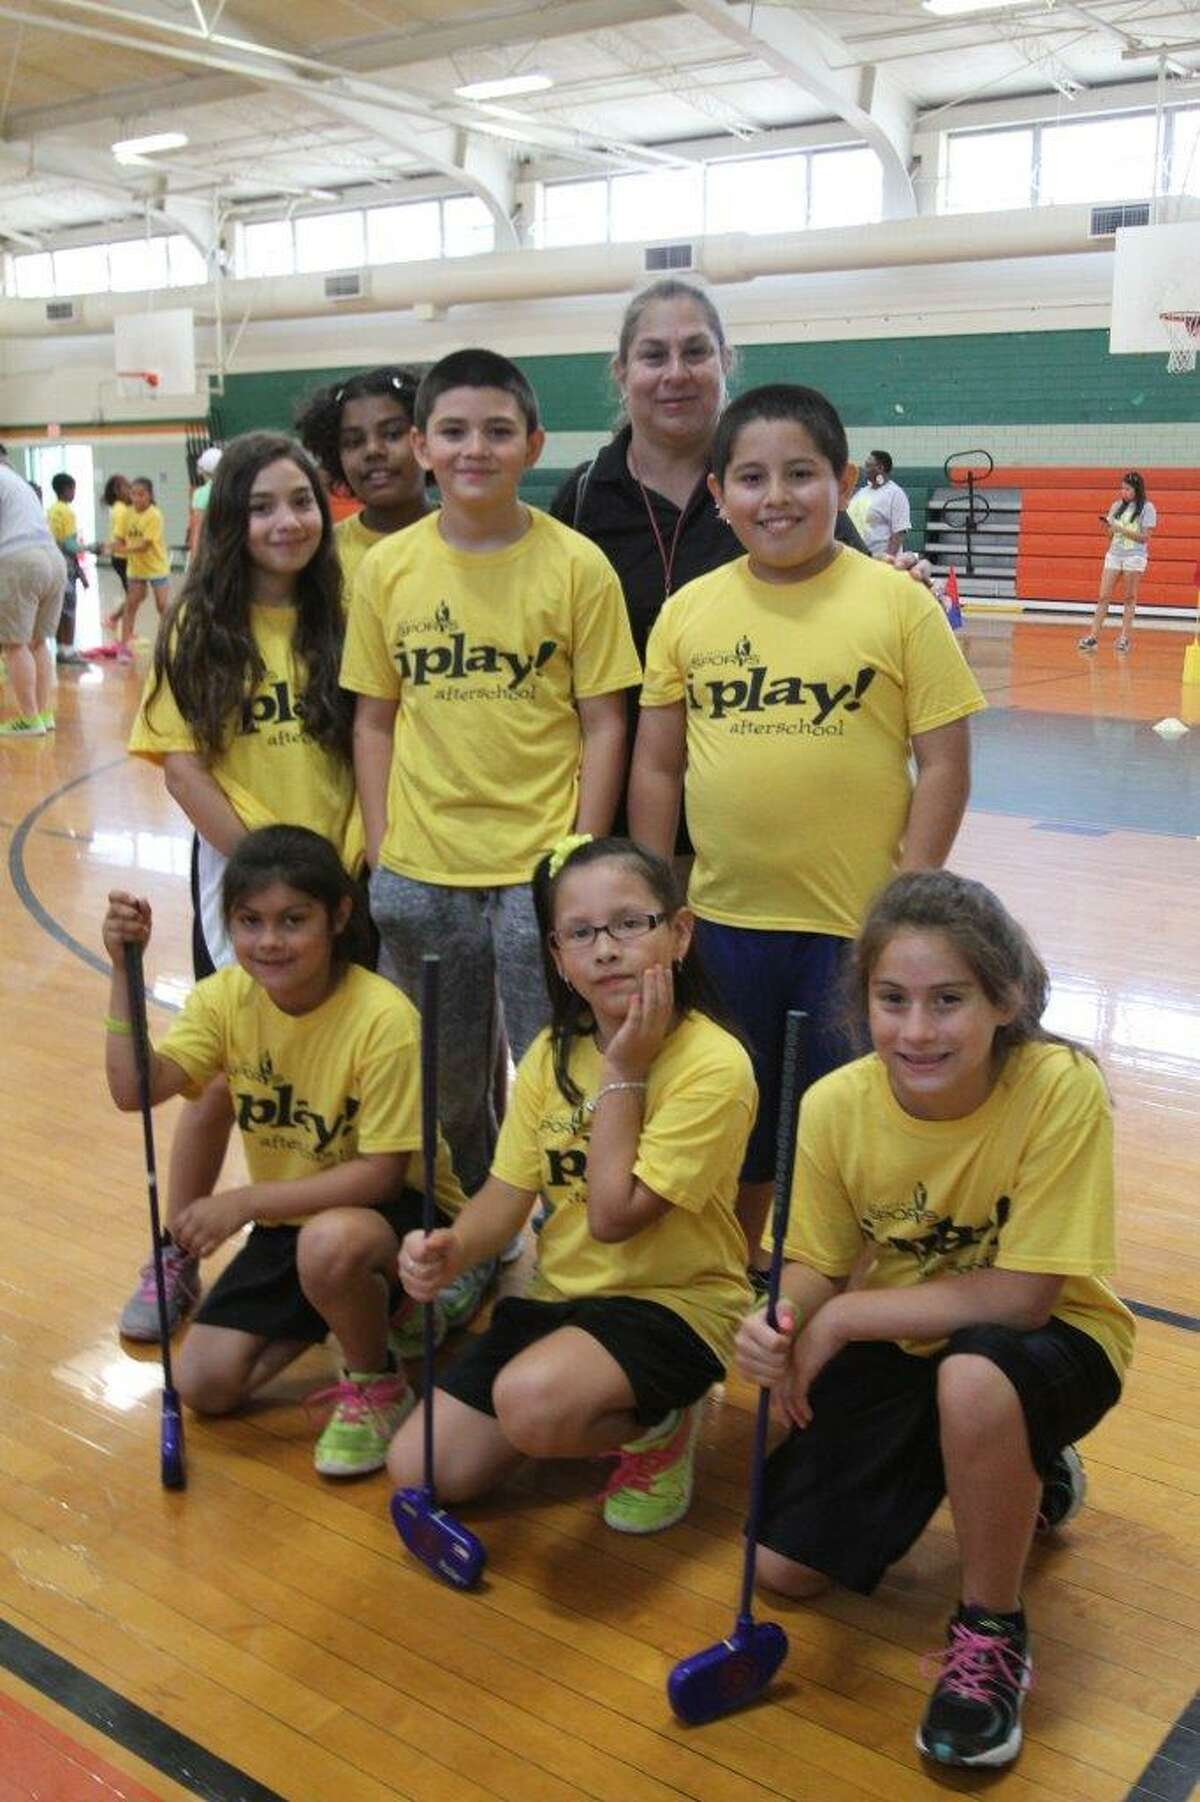 San Antonio Sports i play! afterschool program teaches 1,100 children in two inner-city school districts skill-based instruction in five sports, along with nutrition and character education.